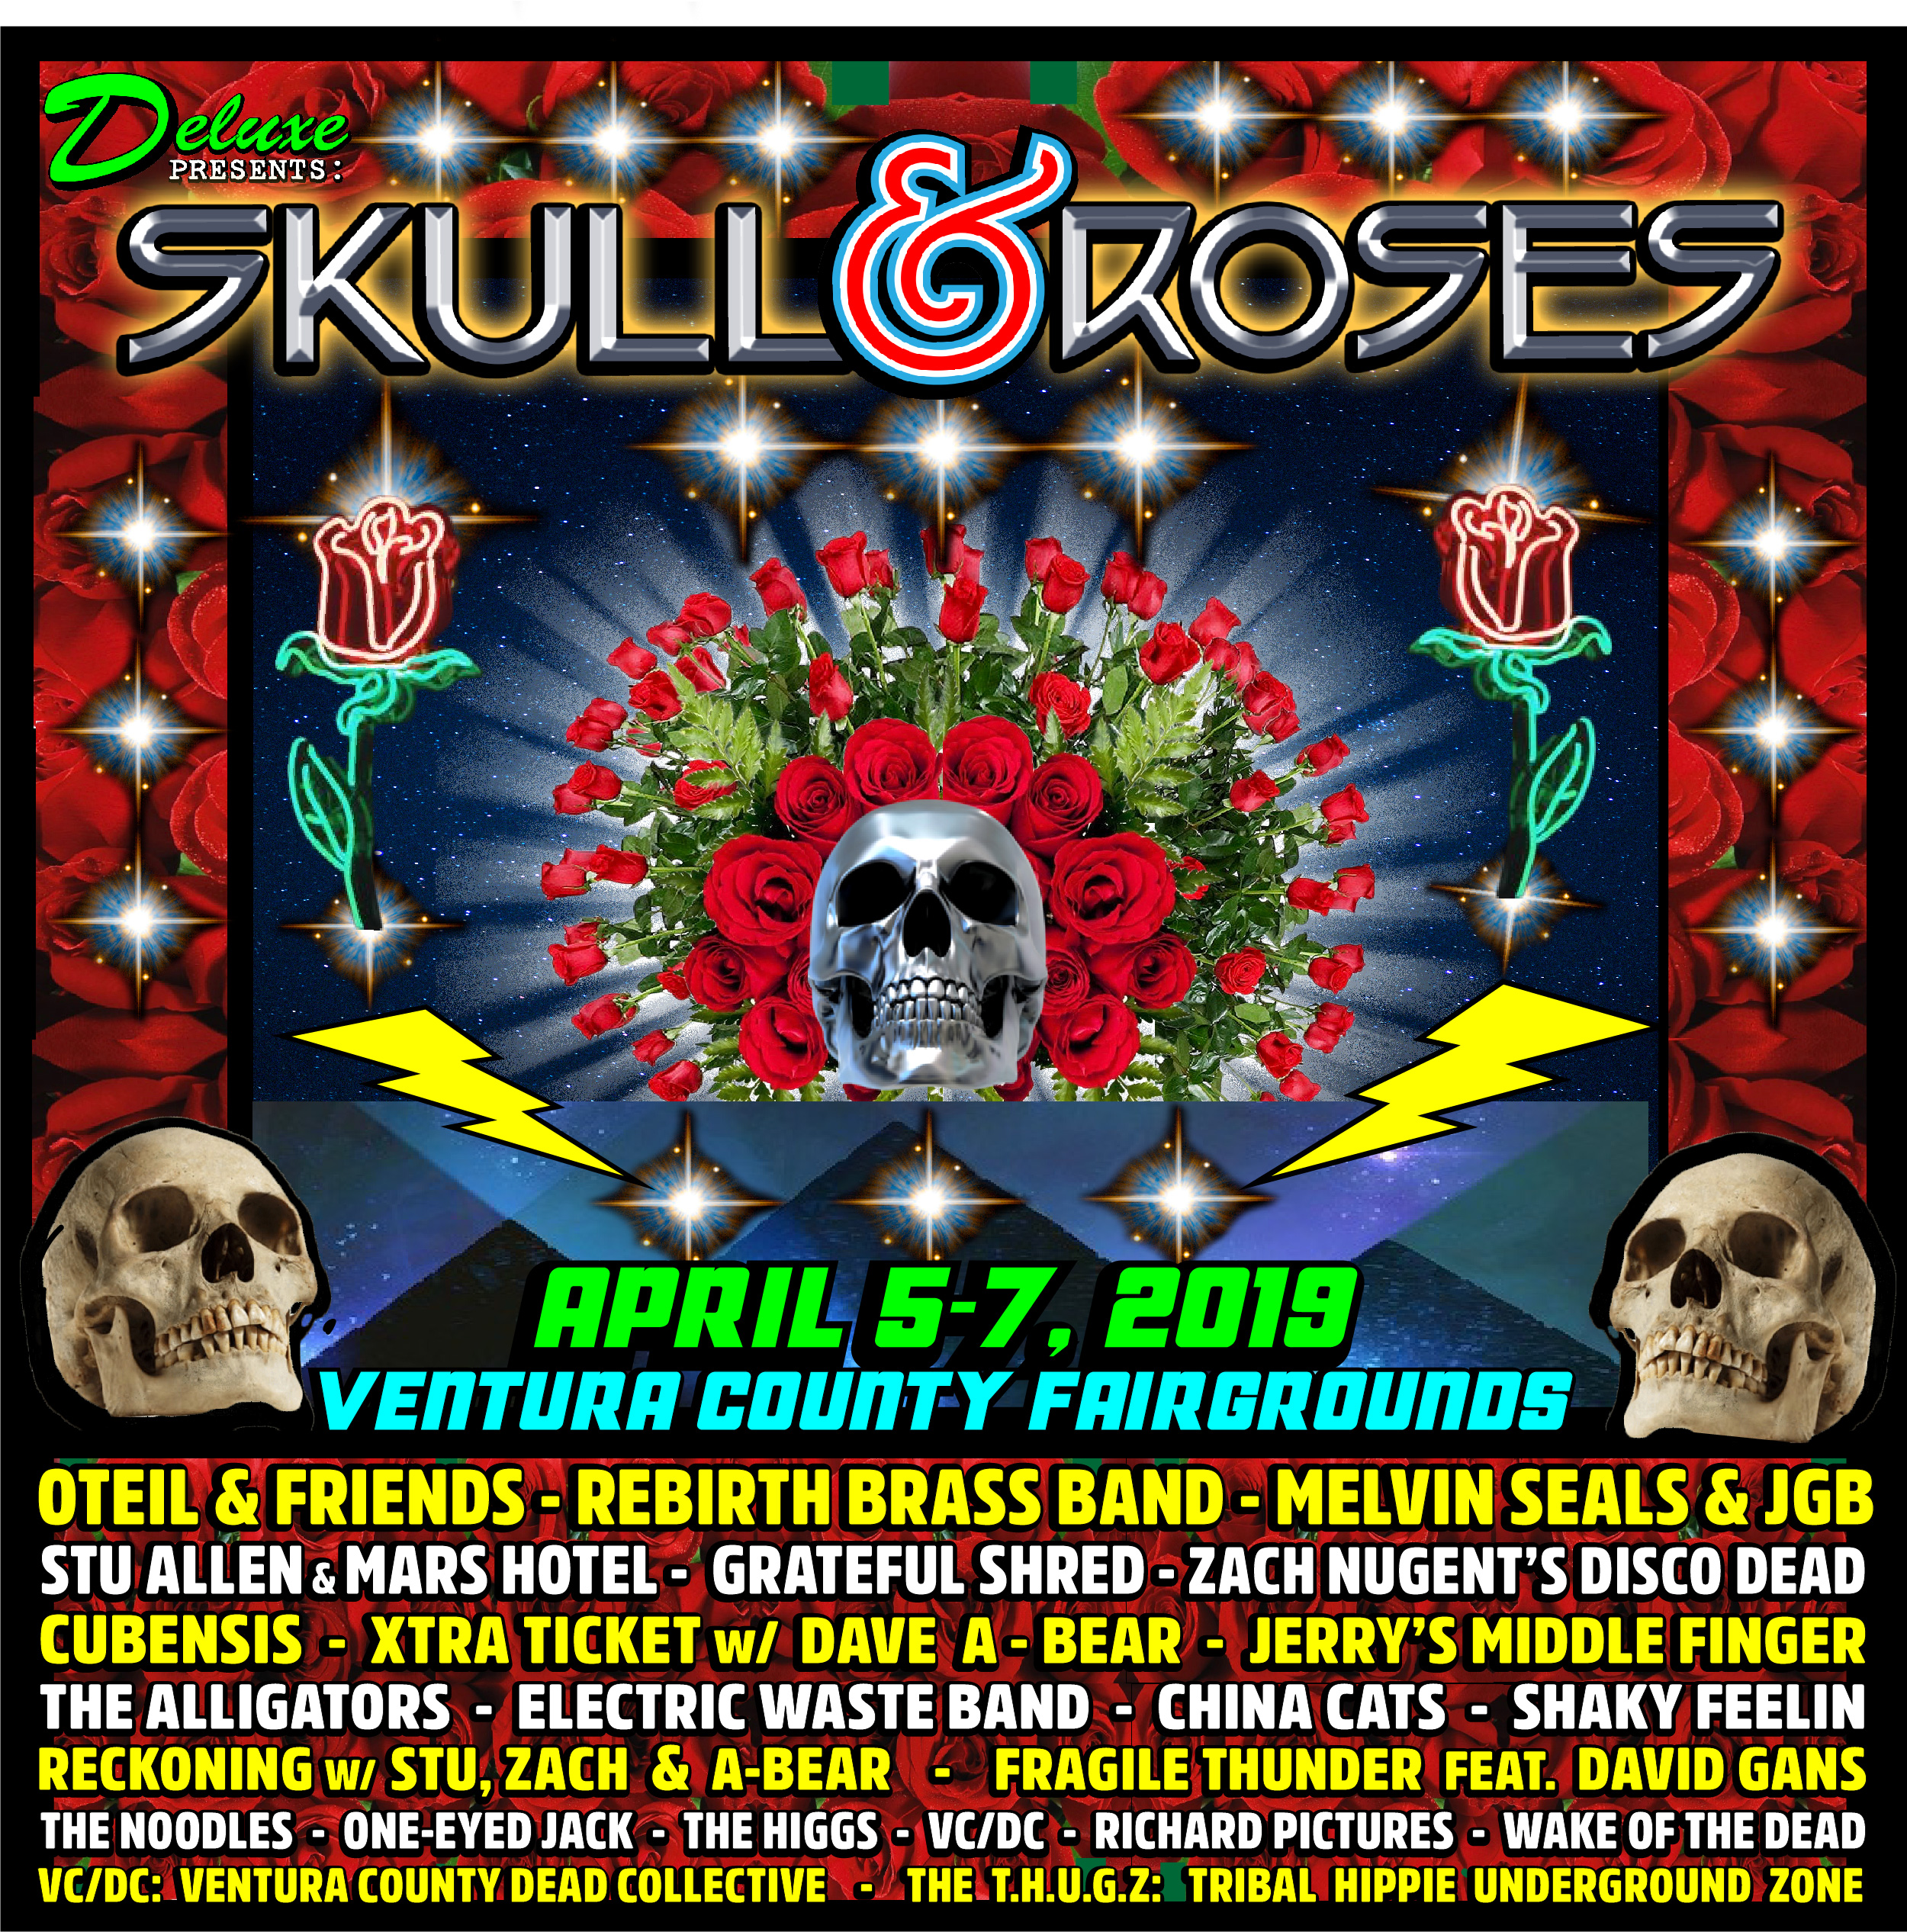 Skull & Roses Festival Returns to Ventura in April